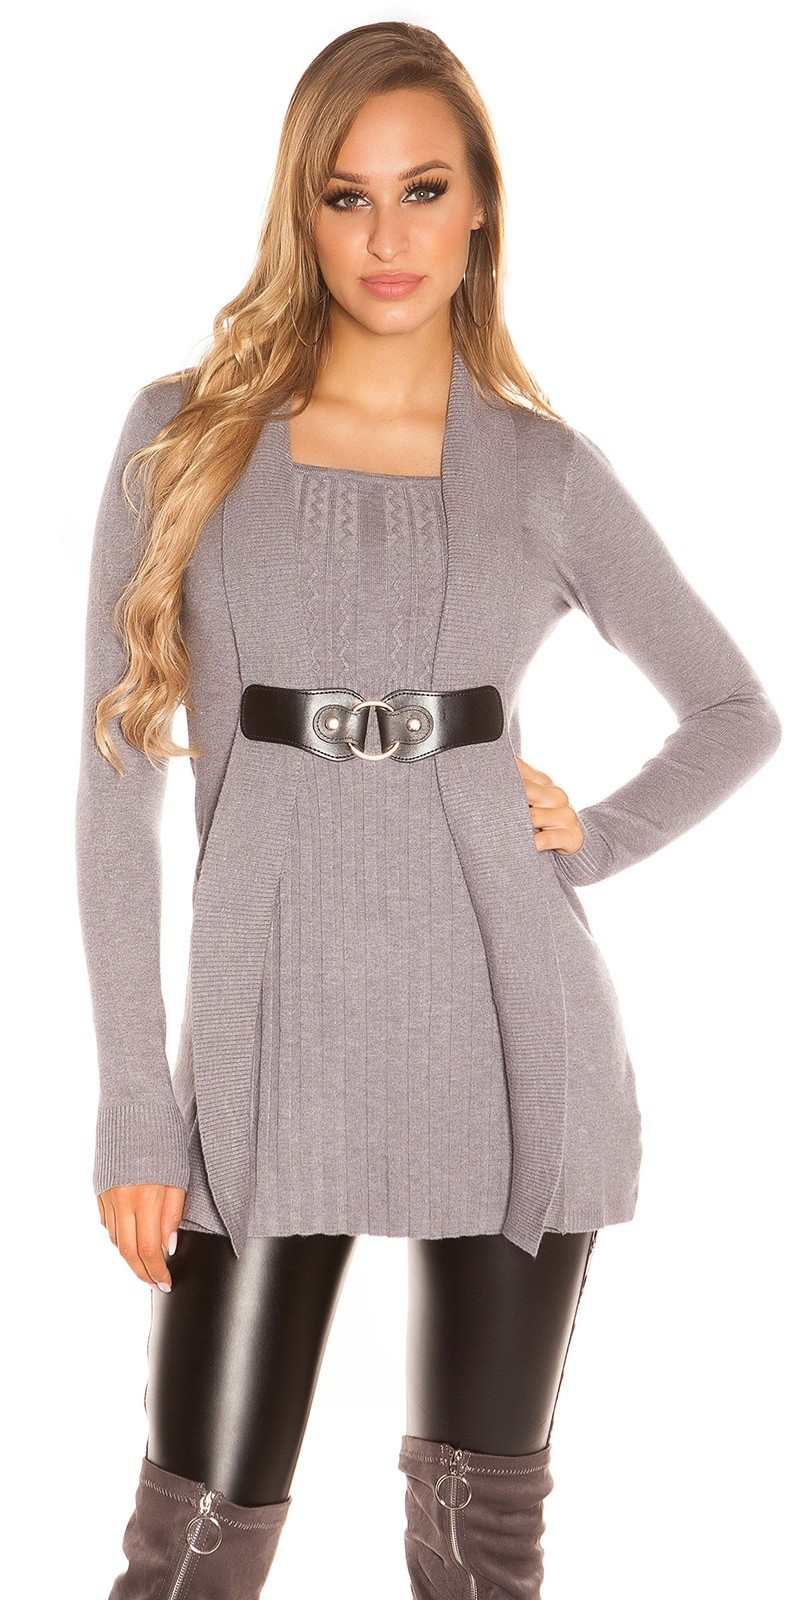 Sexy Longpulli 2in1 look with buckle Grey